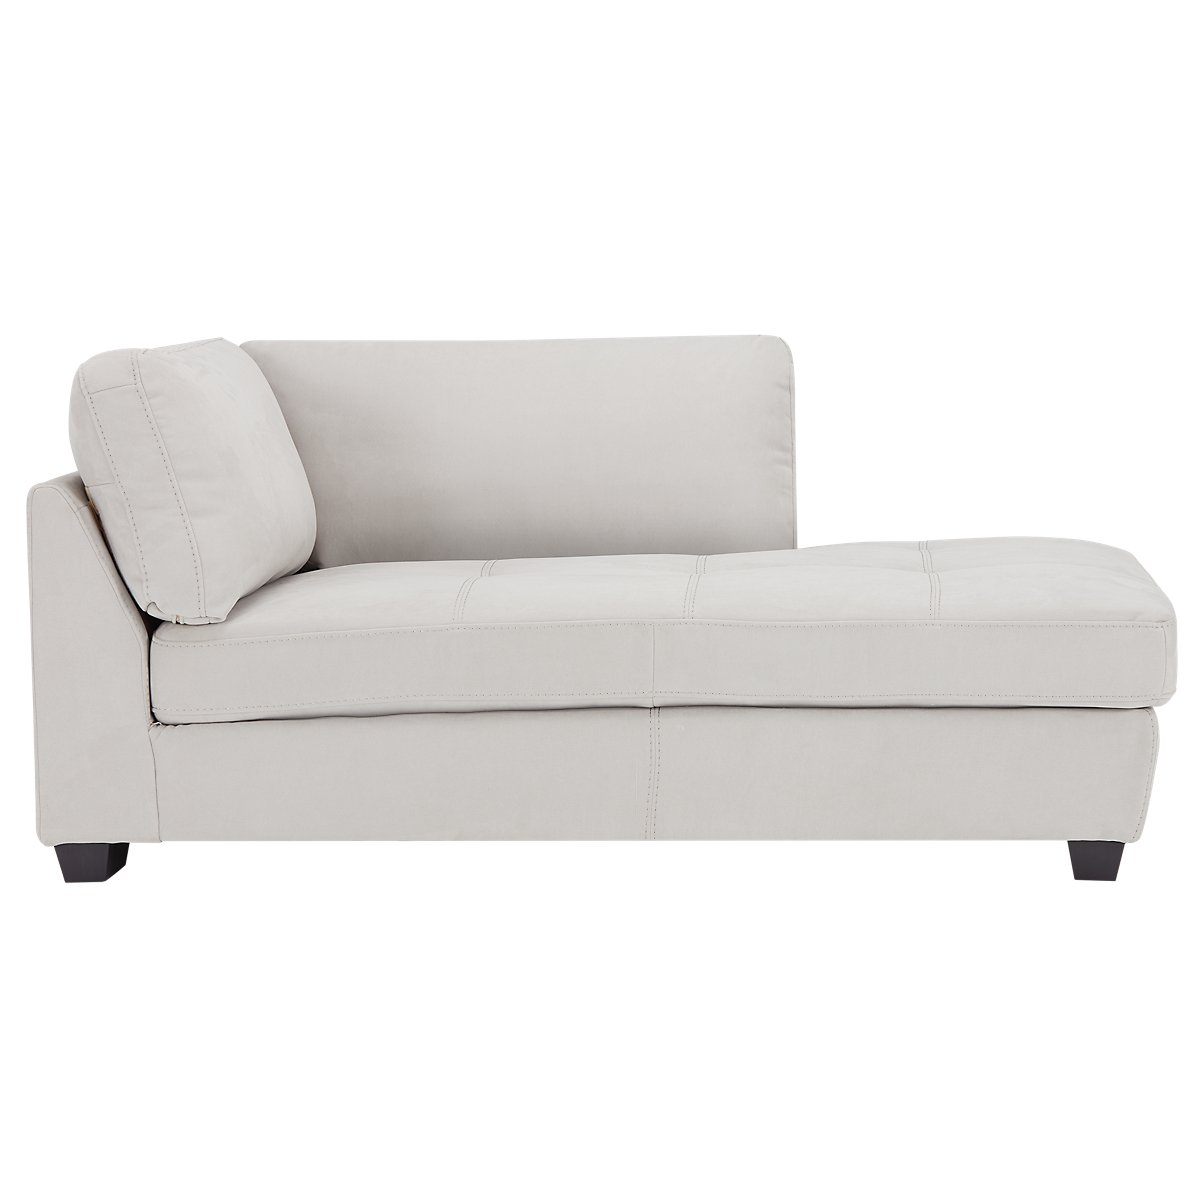 City Furniture Perry Light Gray Microfiber Right Chaise